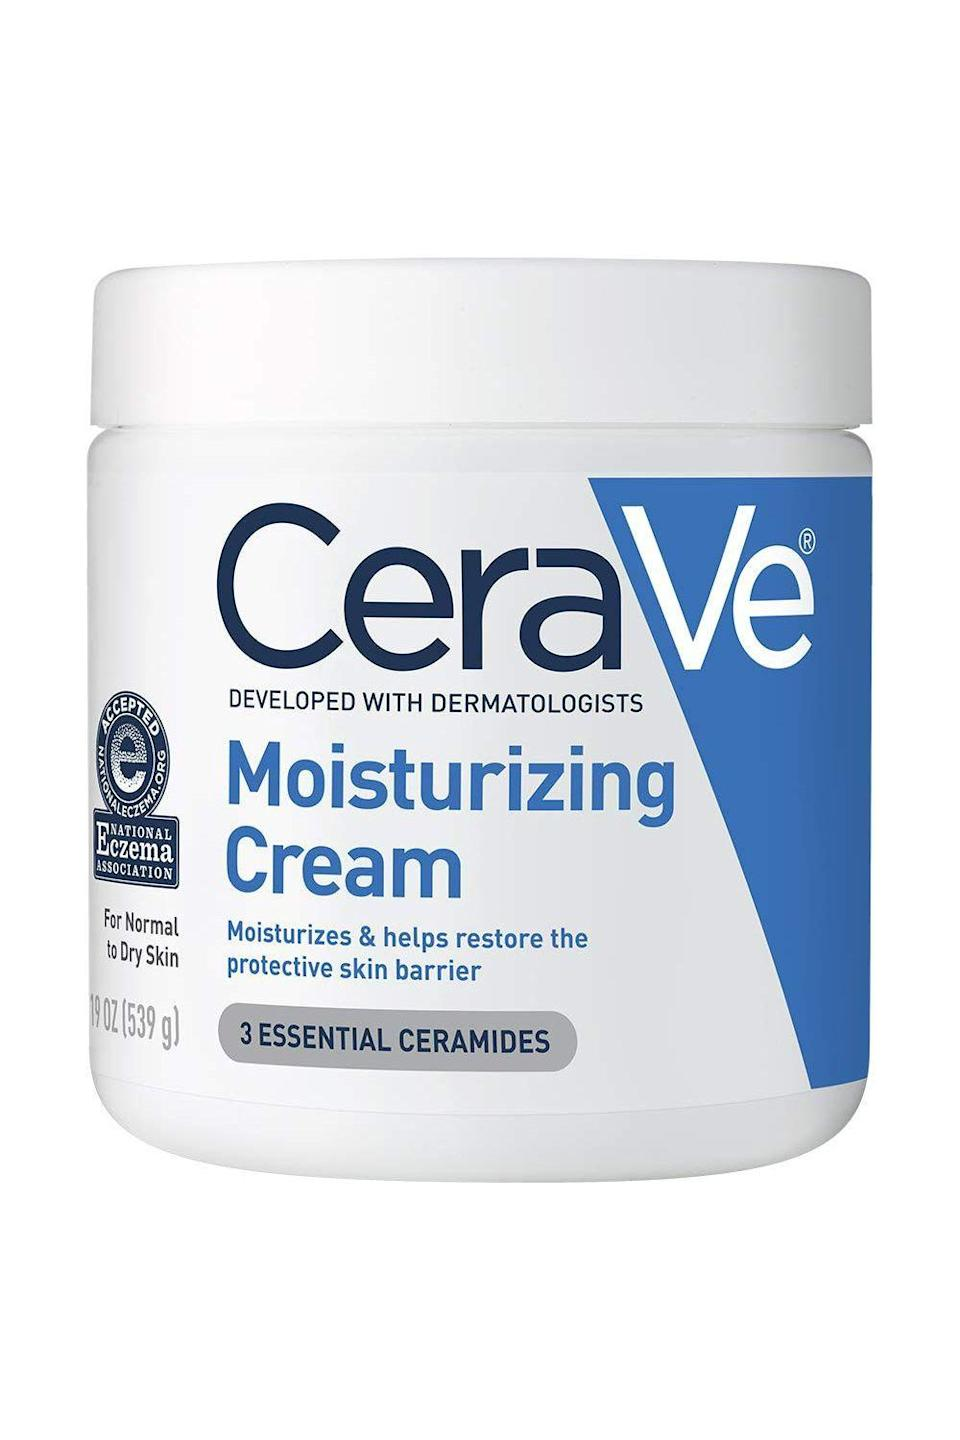 """<p><strong>CeraVe</strong></p><p>amazon.com</p><p><strong>$16.08</strong></p><p><a href=""""https://www.amazon.com/dp/B00TTD9BRC?tag=syn-yahoo-20&ascsubtag=%5Bartid%7C2140.g.35717314%5Bsrc%7Cyahoo-us"""" rel=""""nofollow noopener"""" target=""""_blank"""" data-ylk=""""slk:shop"""" class=""""link rapid-noclick-resp"""">shop</a></p><p>Don't know what <a href=""""https://www.cosmopolitan.com/style-beauty/beauty/g21950910/best-face-moisturizer-skin-type/"""" rel=""""nofollow noopener"""" target=""""_blank"""" data-ylk=""""slk:moisturizer"""" class=""""link rapid-noclick-resp"""">moisturizer</a> to get? Go with this one. It's loaded with hyaluronic acid and ceramides to hydrate your skin and restore its protective barrier all while being fragrance- and oil-free.</p>"""